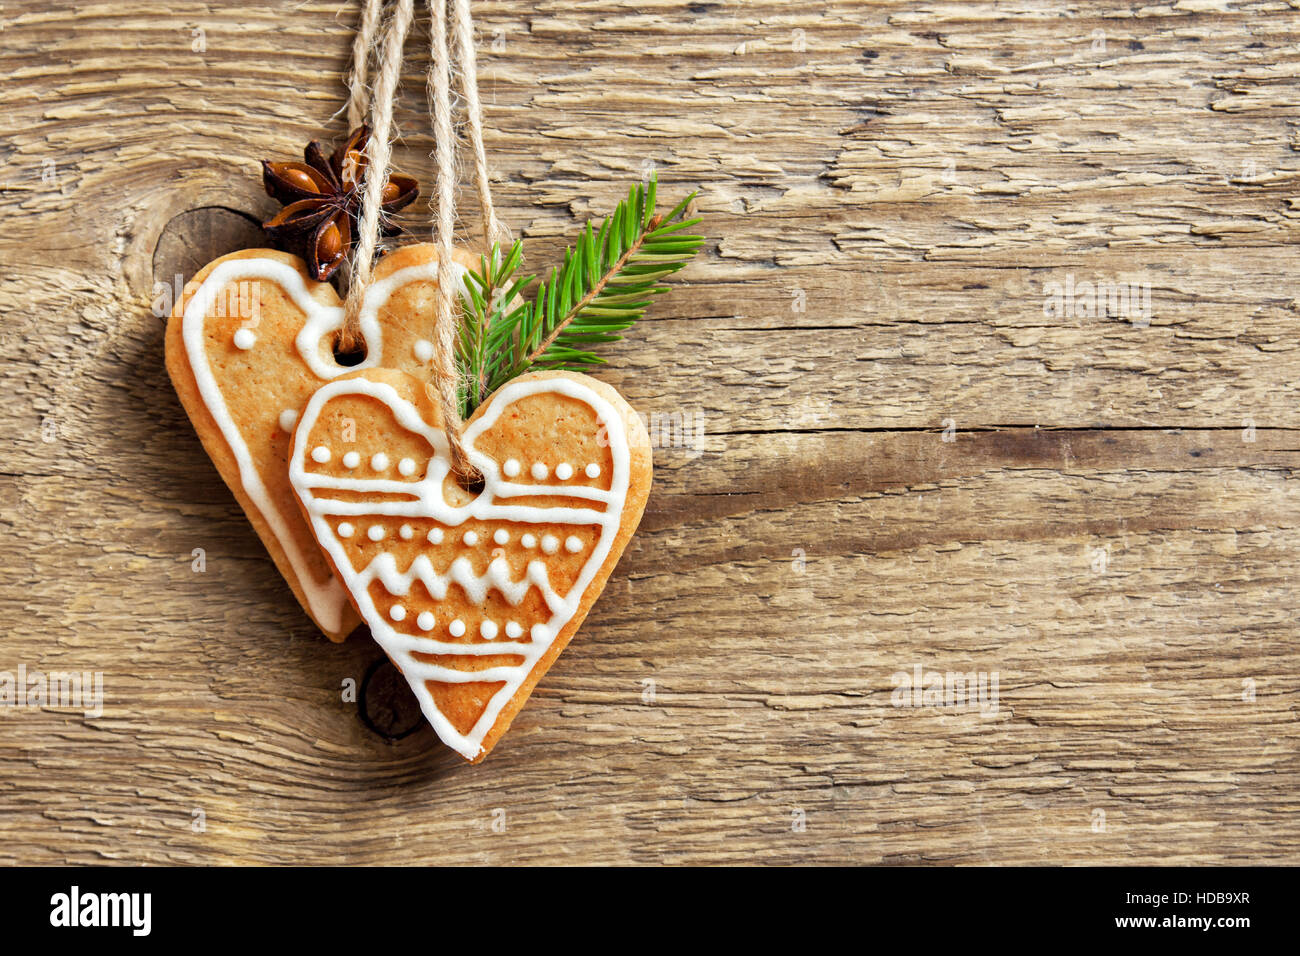 Christmas wooden background with gingerbread cookies heart shape, copy space - homemade festive decor, greeting - Stock Image